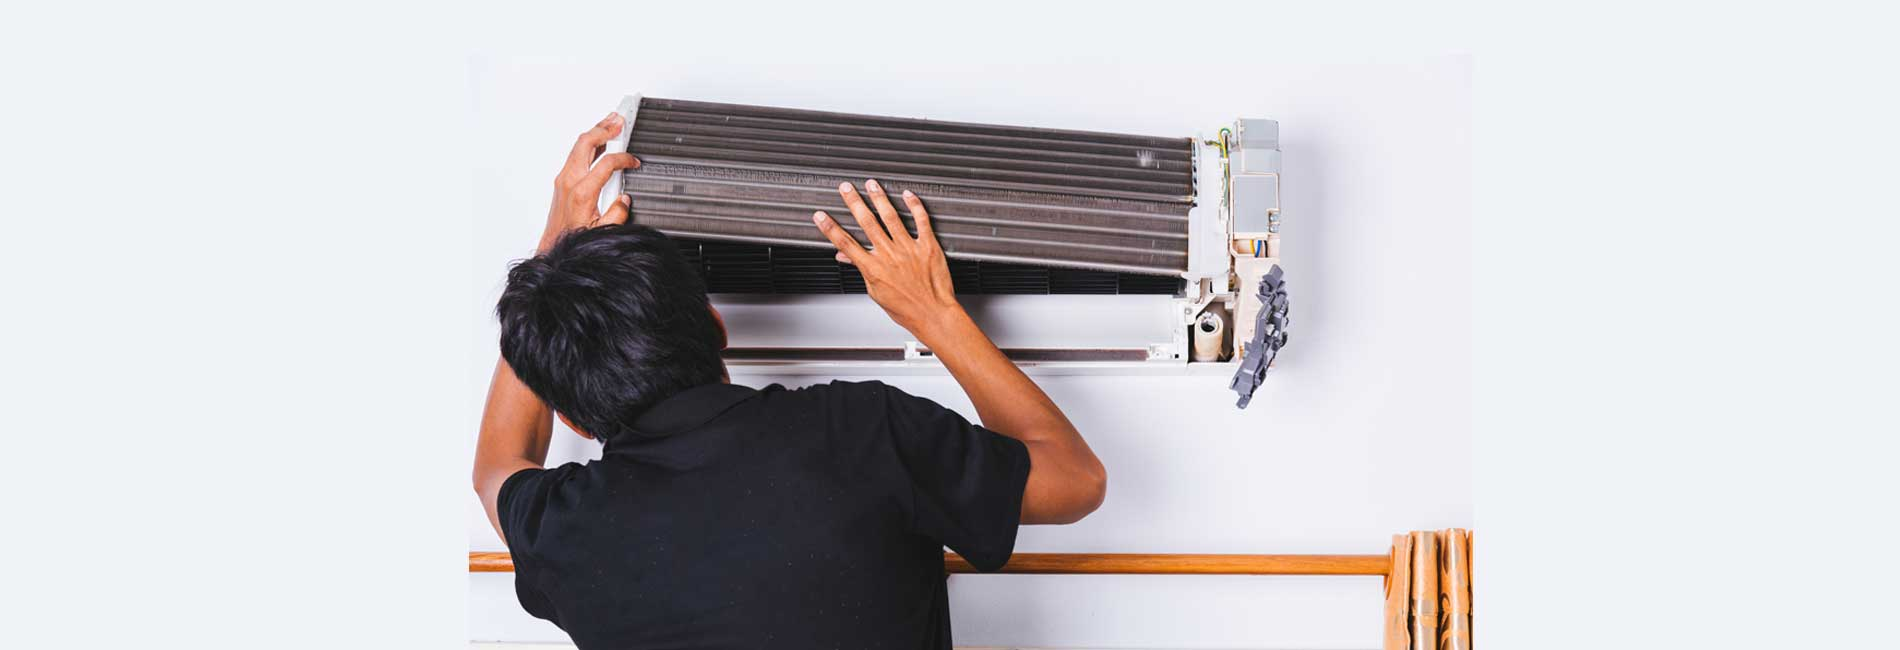 AC Repair in Kanathur